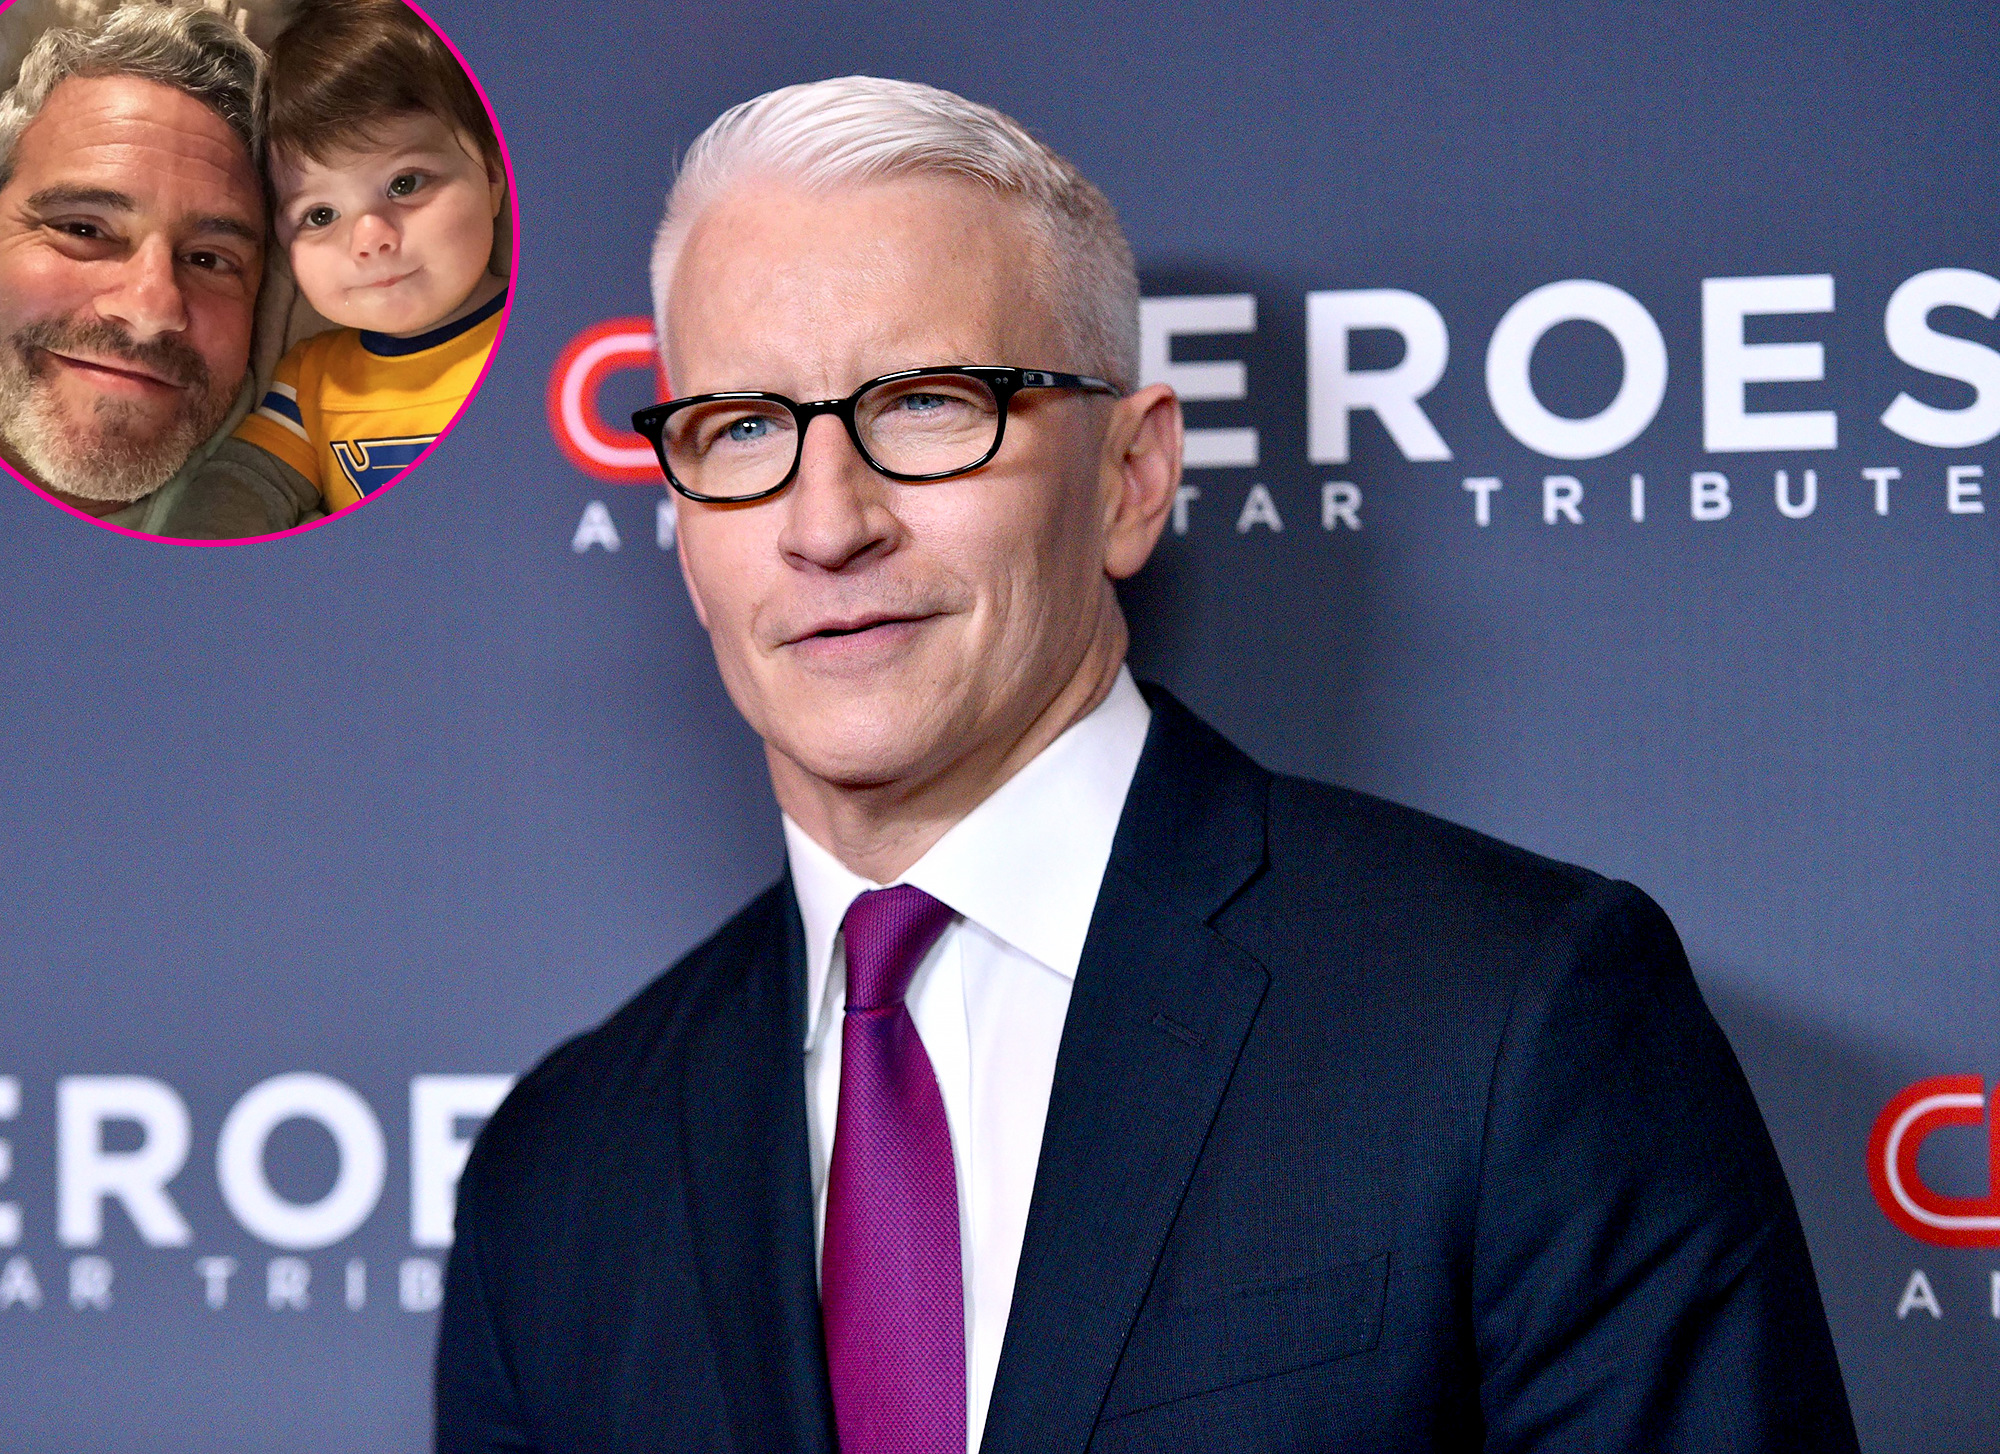 Anderson Cooper Says Friend Andy Cohen's Son Is the 'Greatest Kid'